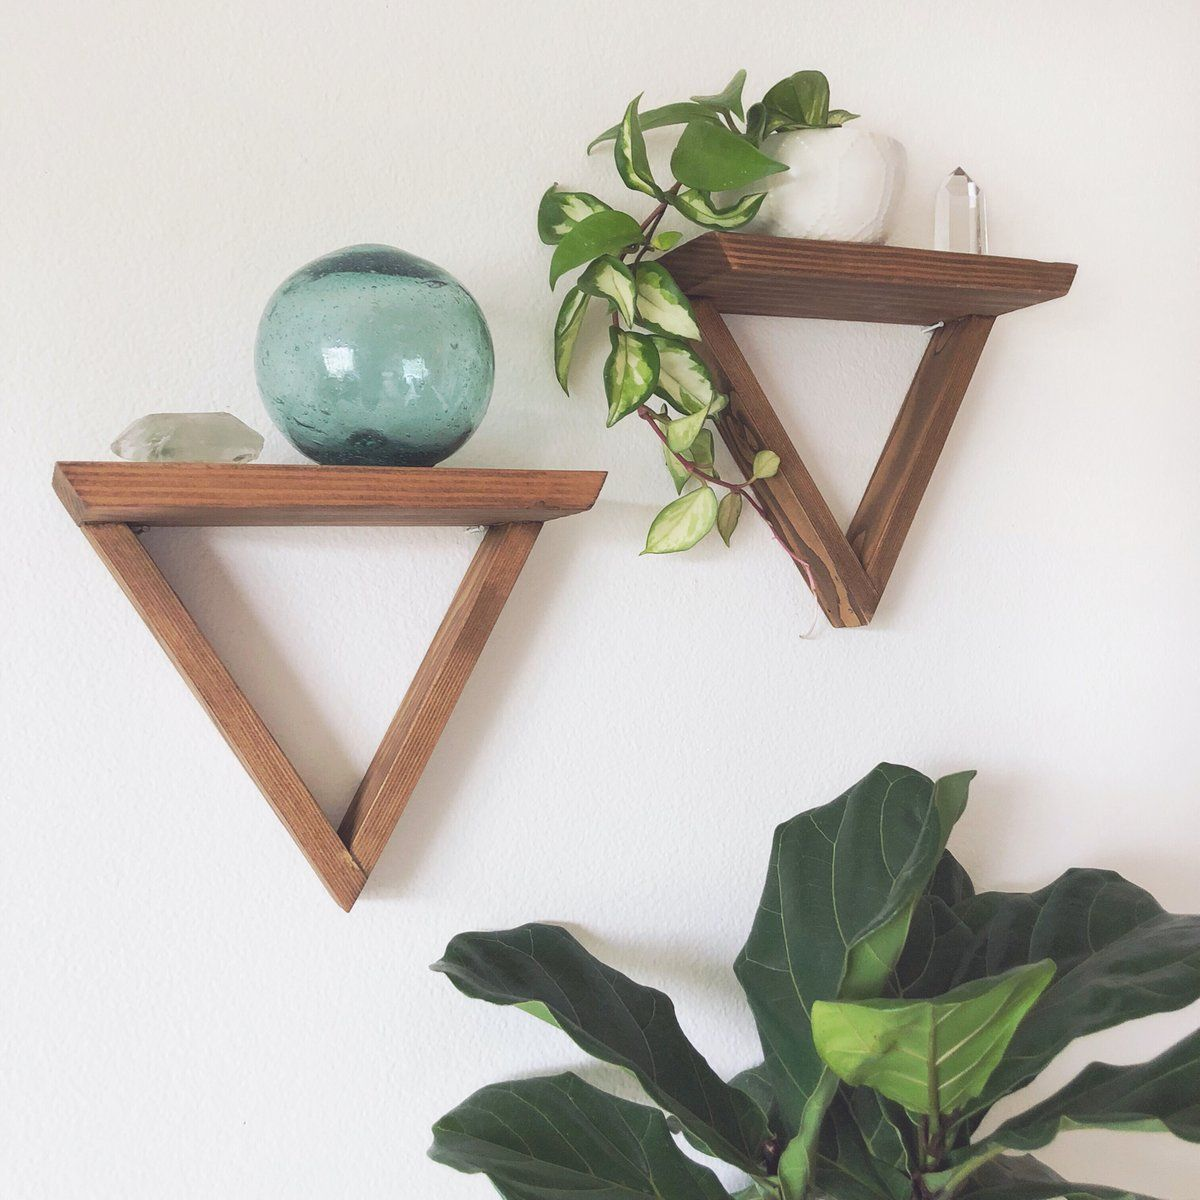 These Geometric Wooden Shelves Add The Perfect Touch Of Minimalist Decor Ideal For Displaying Small Plants An Small Wooden Shelf Triangle Shelf Trending Decor